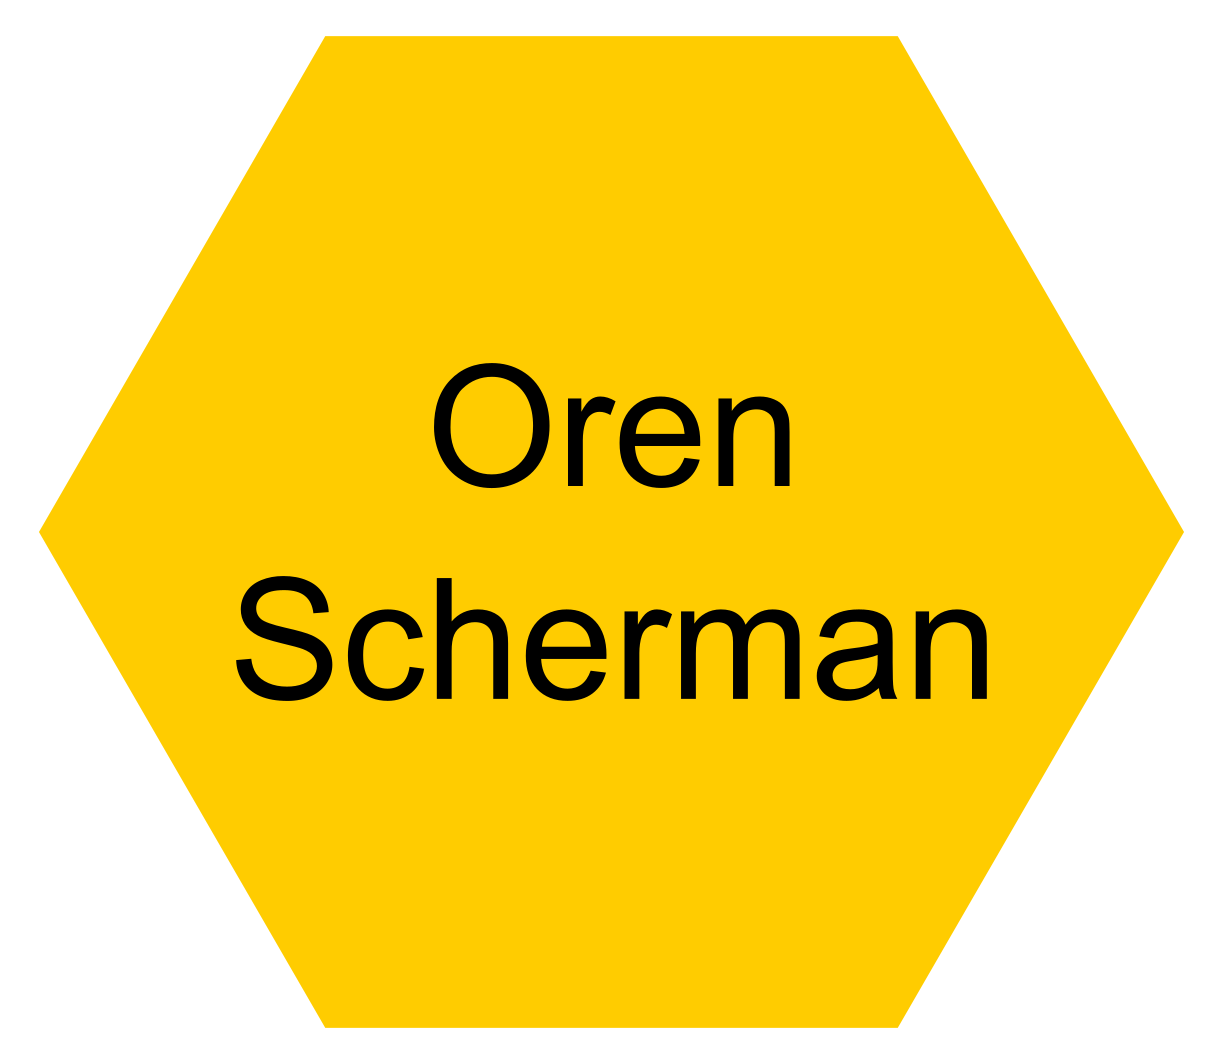 Prof. Oren Scherman (University of Cambridge: Principal Investigator) - Click this icon to reveal their contact details.